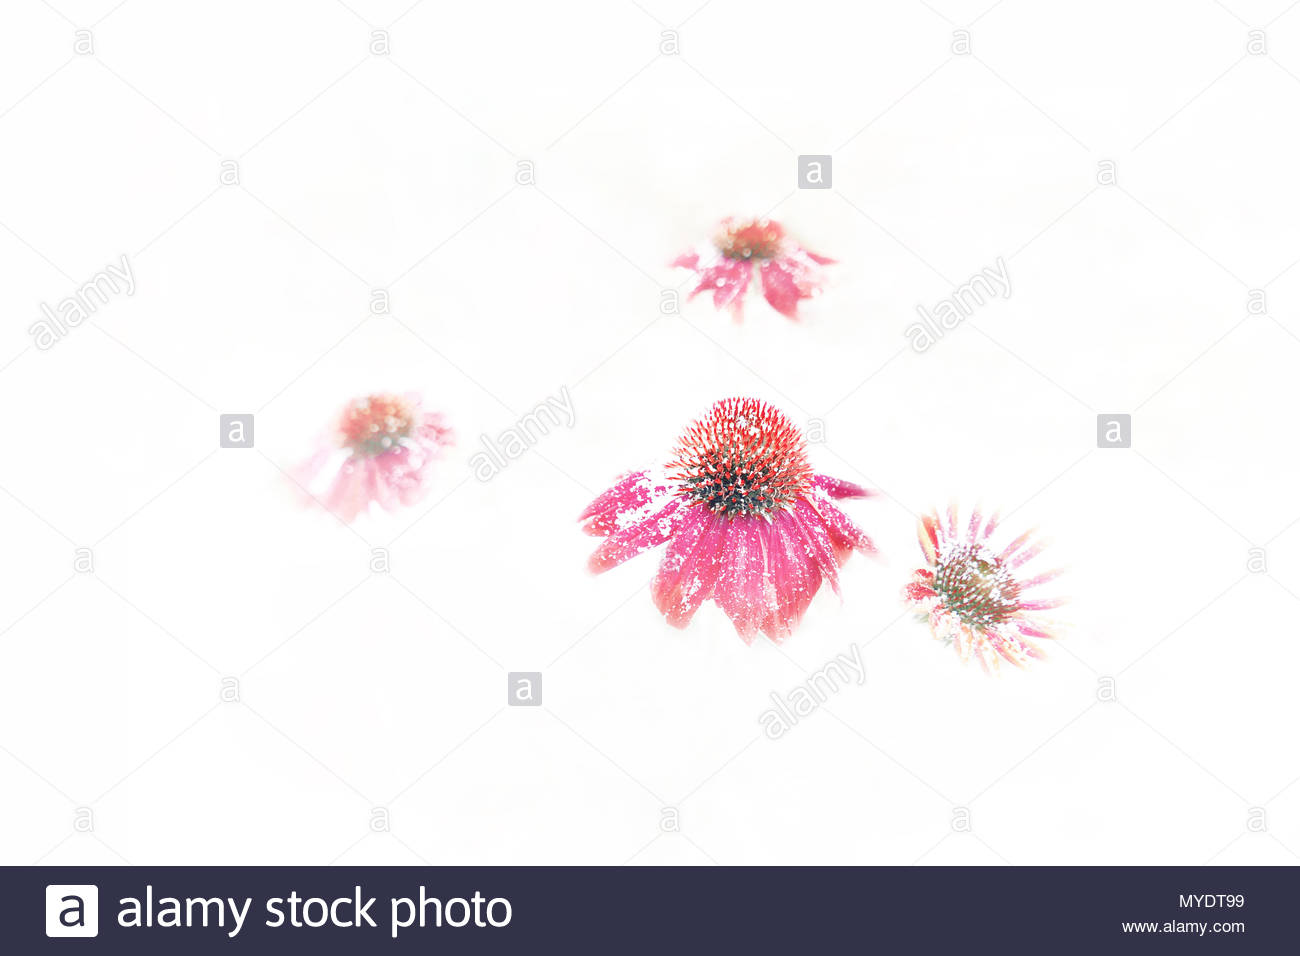 Snow-dusted Echinacea blossoms emerge from a bright white background. - Stock Image